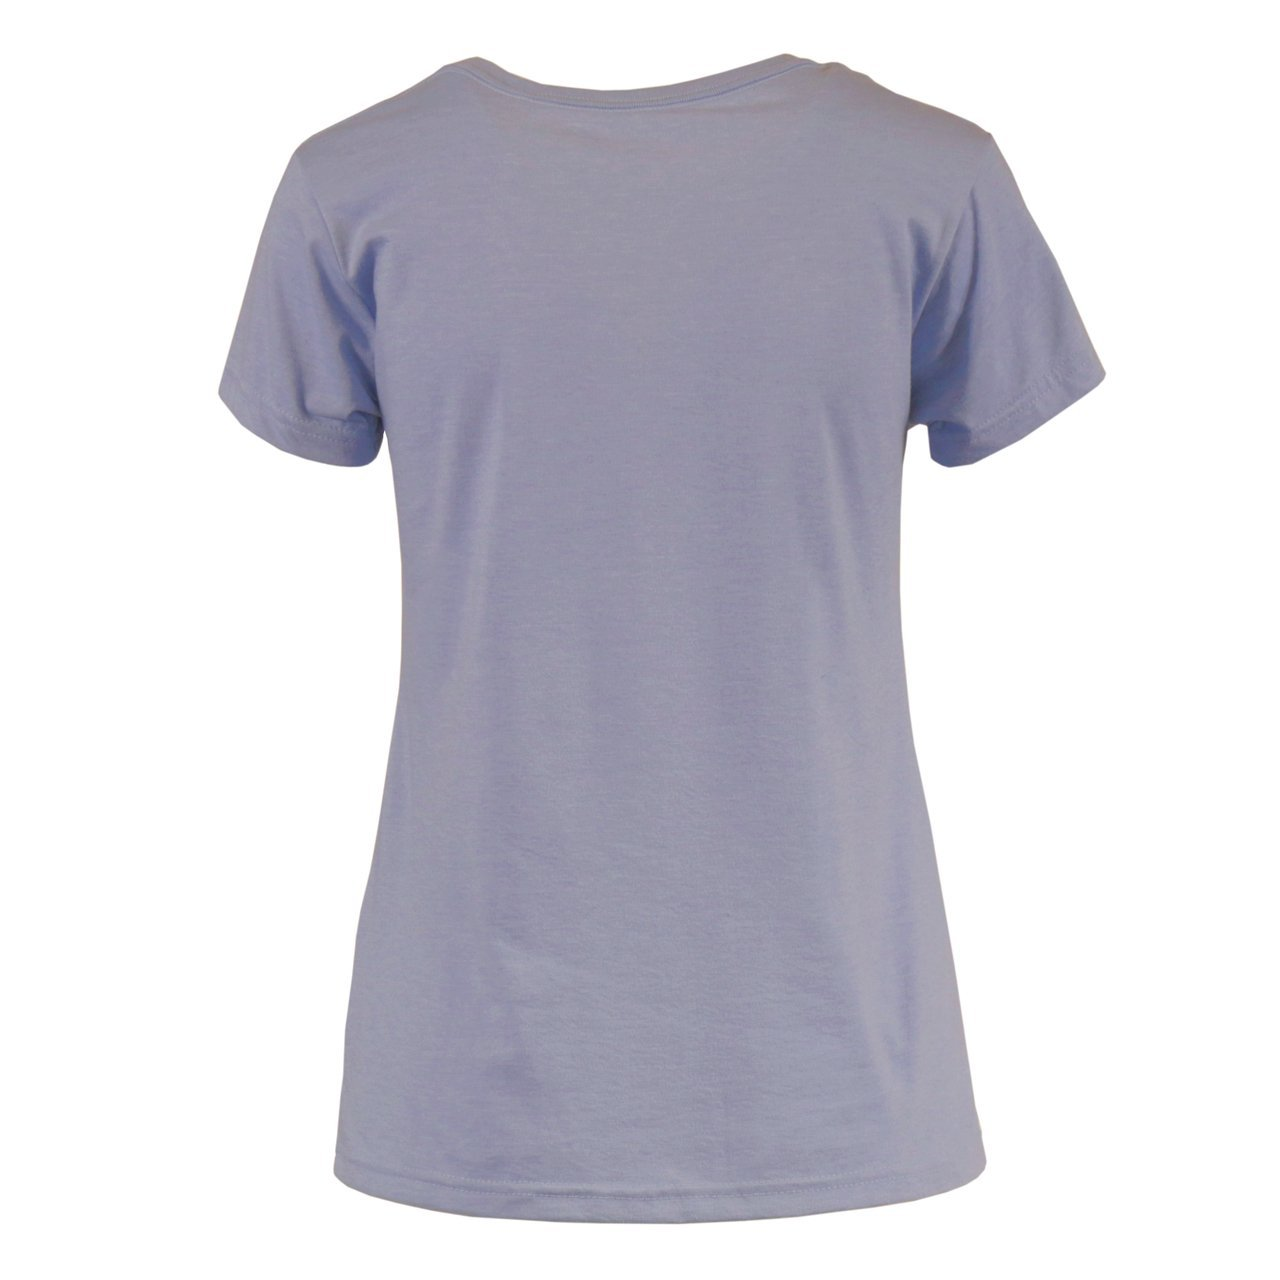 PC150LB Eco REPREVE® Recycled Polyester/Cotton Ladies T-Shirt - Light Blue